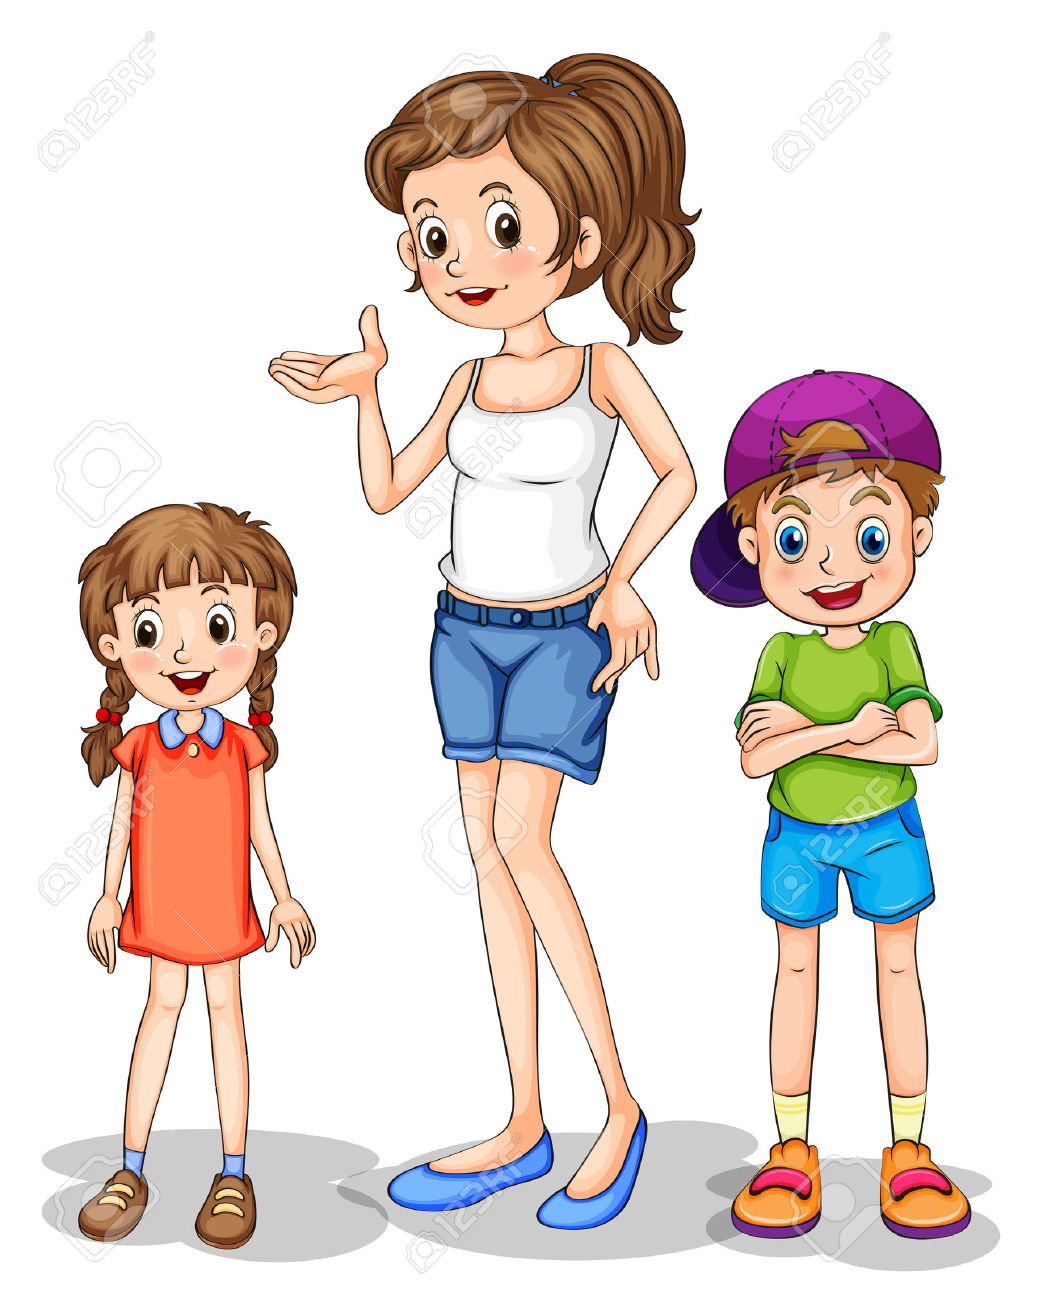 clipartfest and her. 4 siblings clipart 3 boys 1 girl